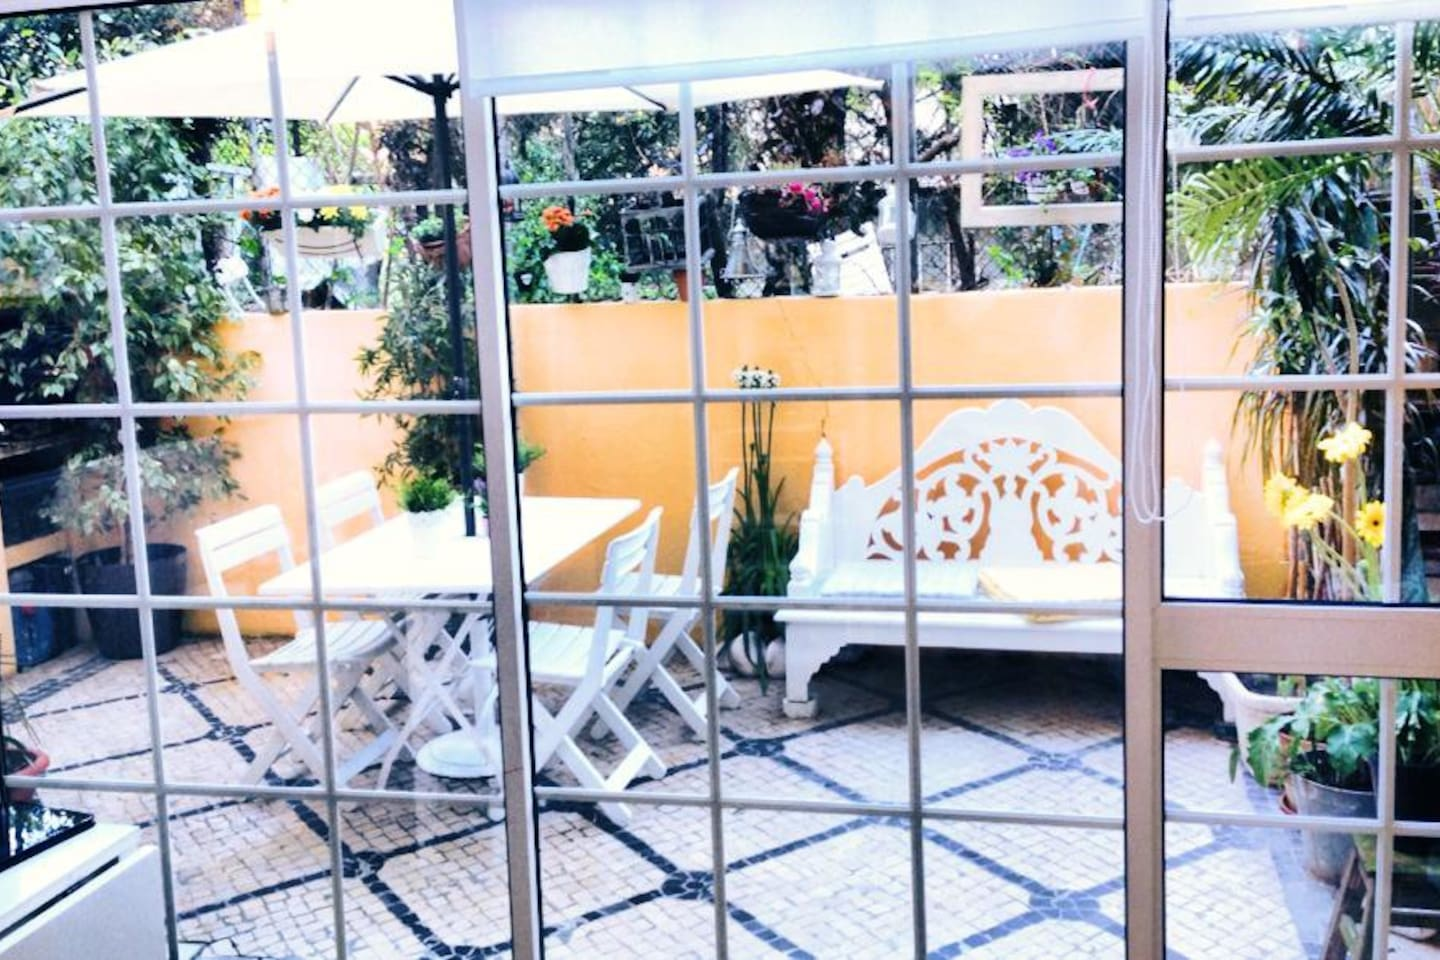 Includes access to private patio with BBQ and outside eating table in Lisbon Centre.